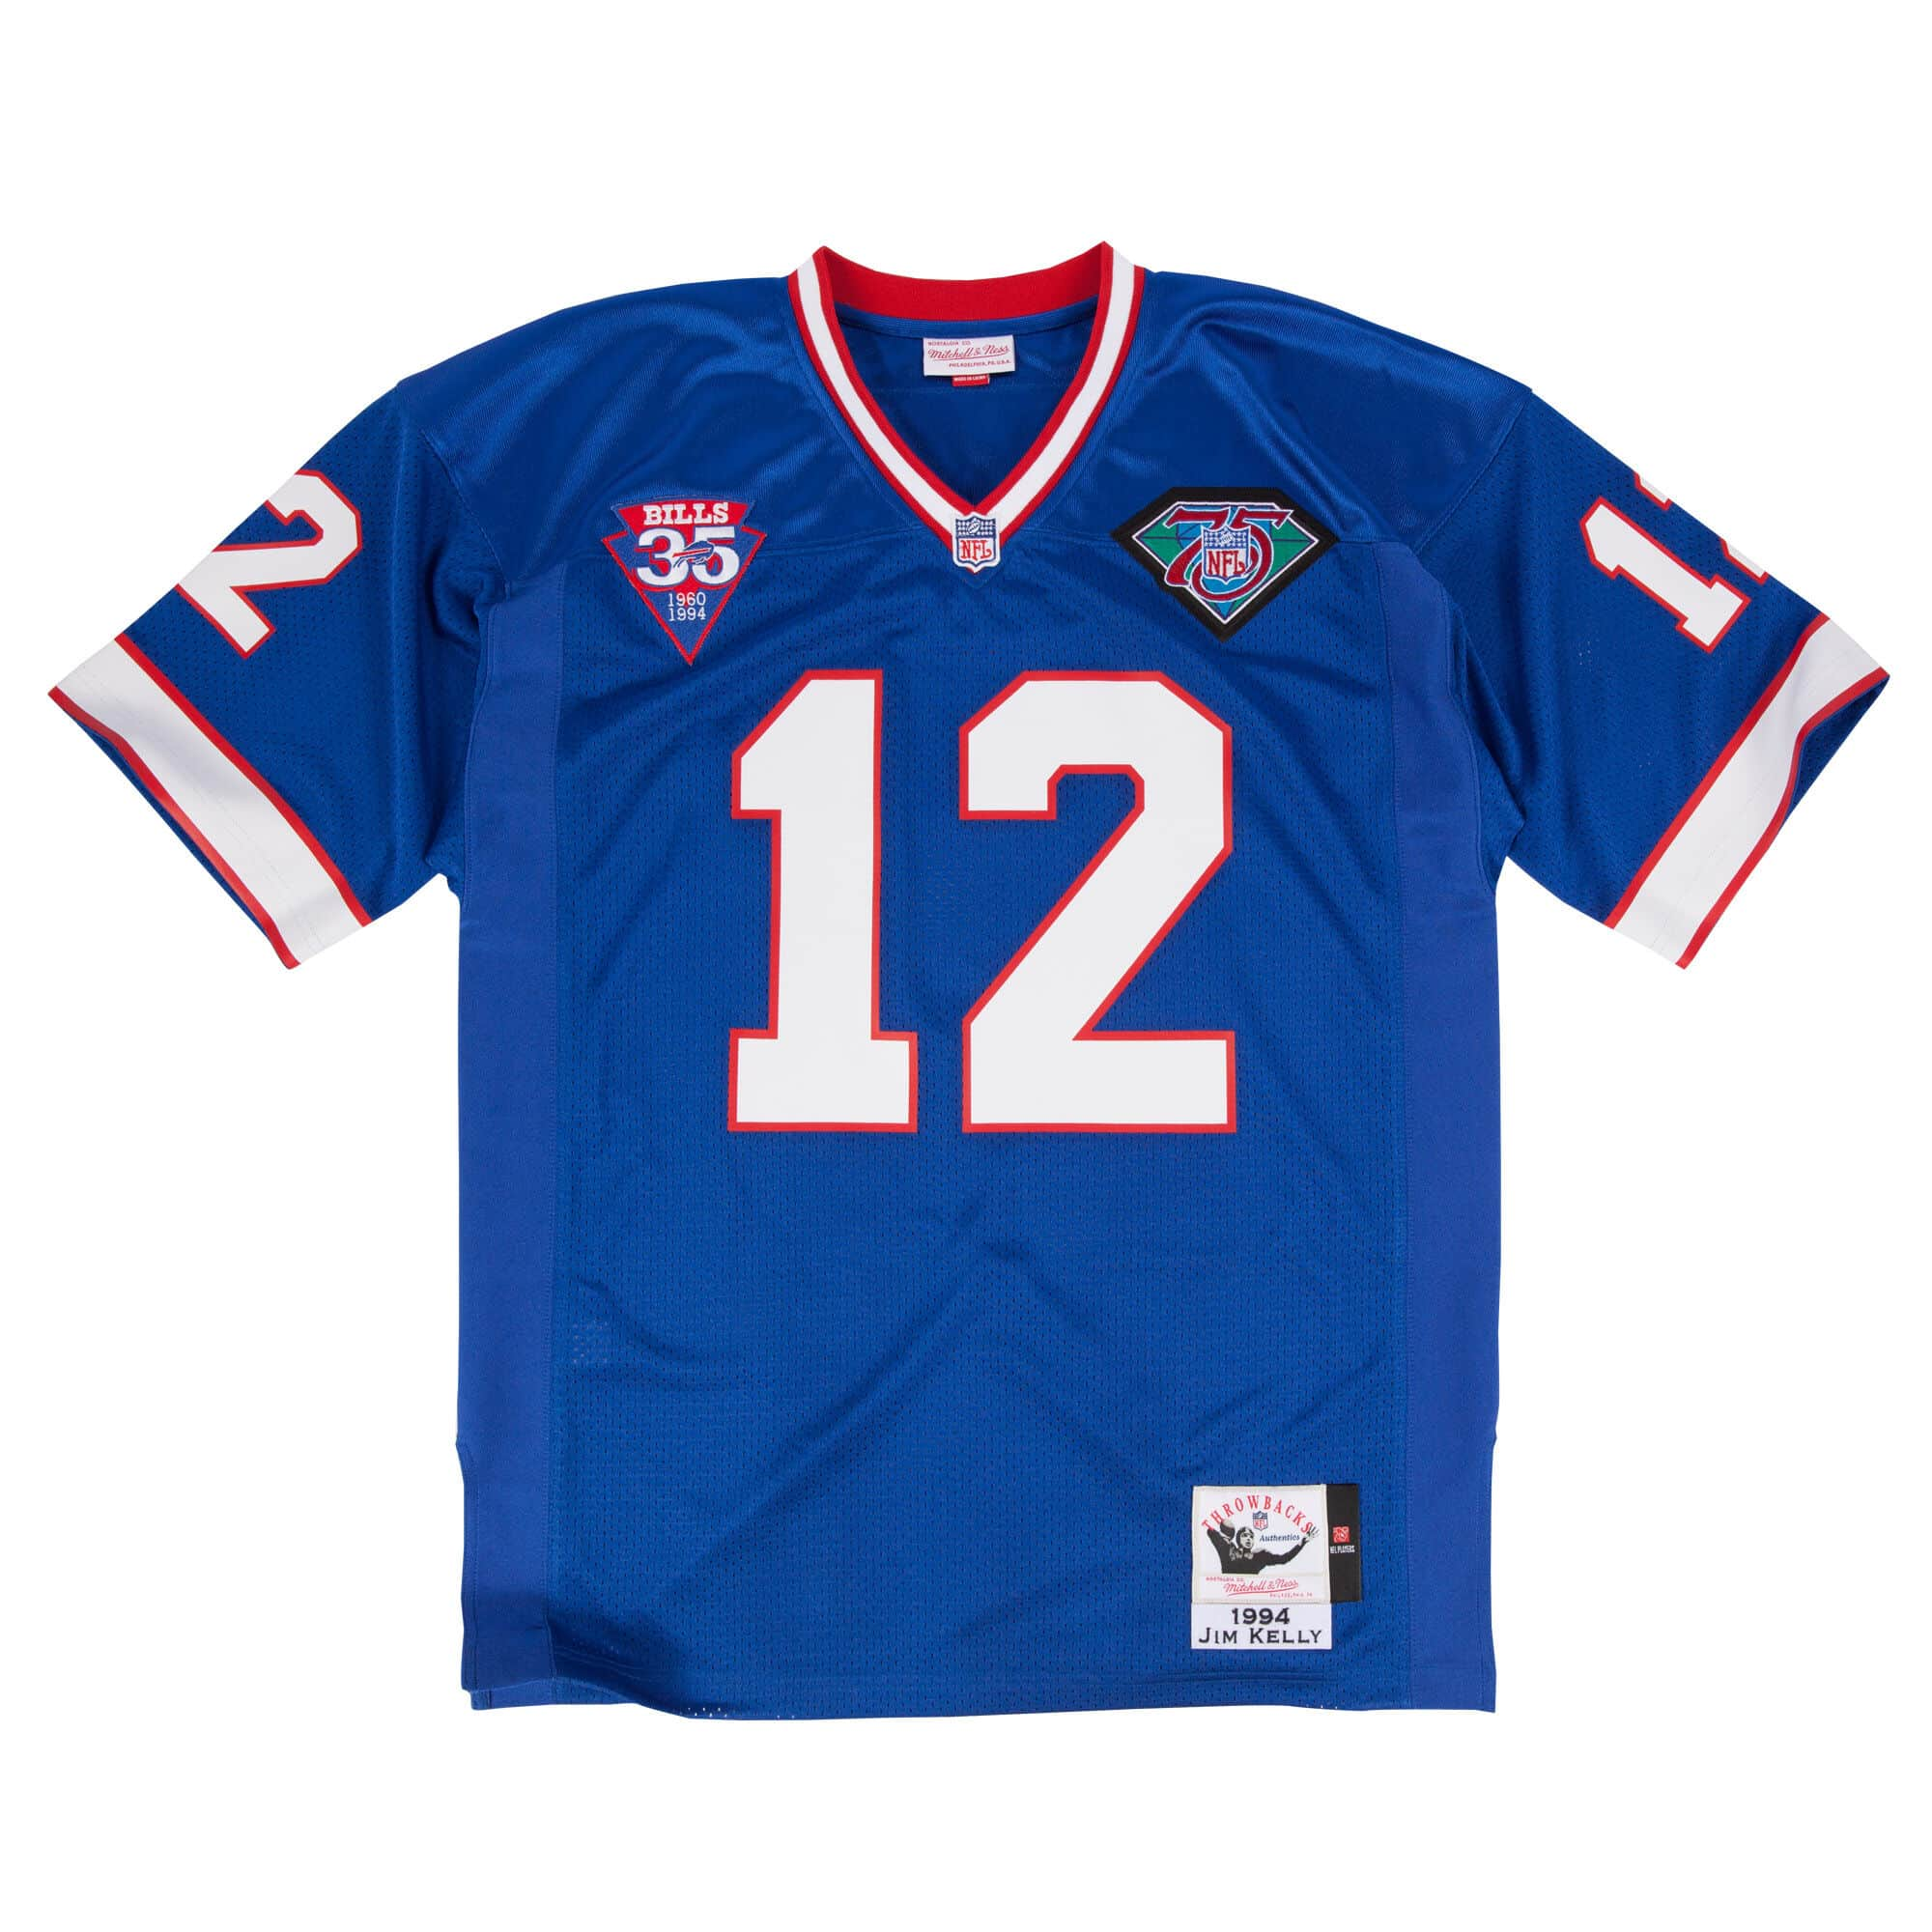 Jim Kelly 1994 Authentic Jersey Buffalo Bills